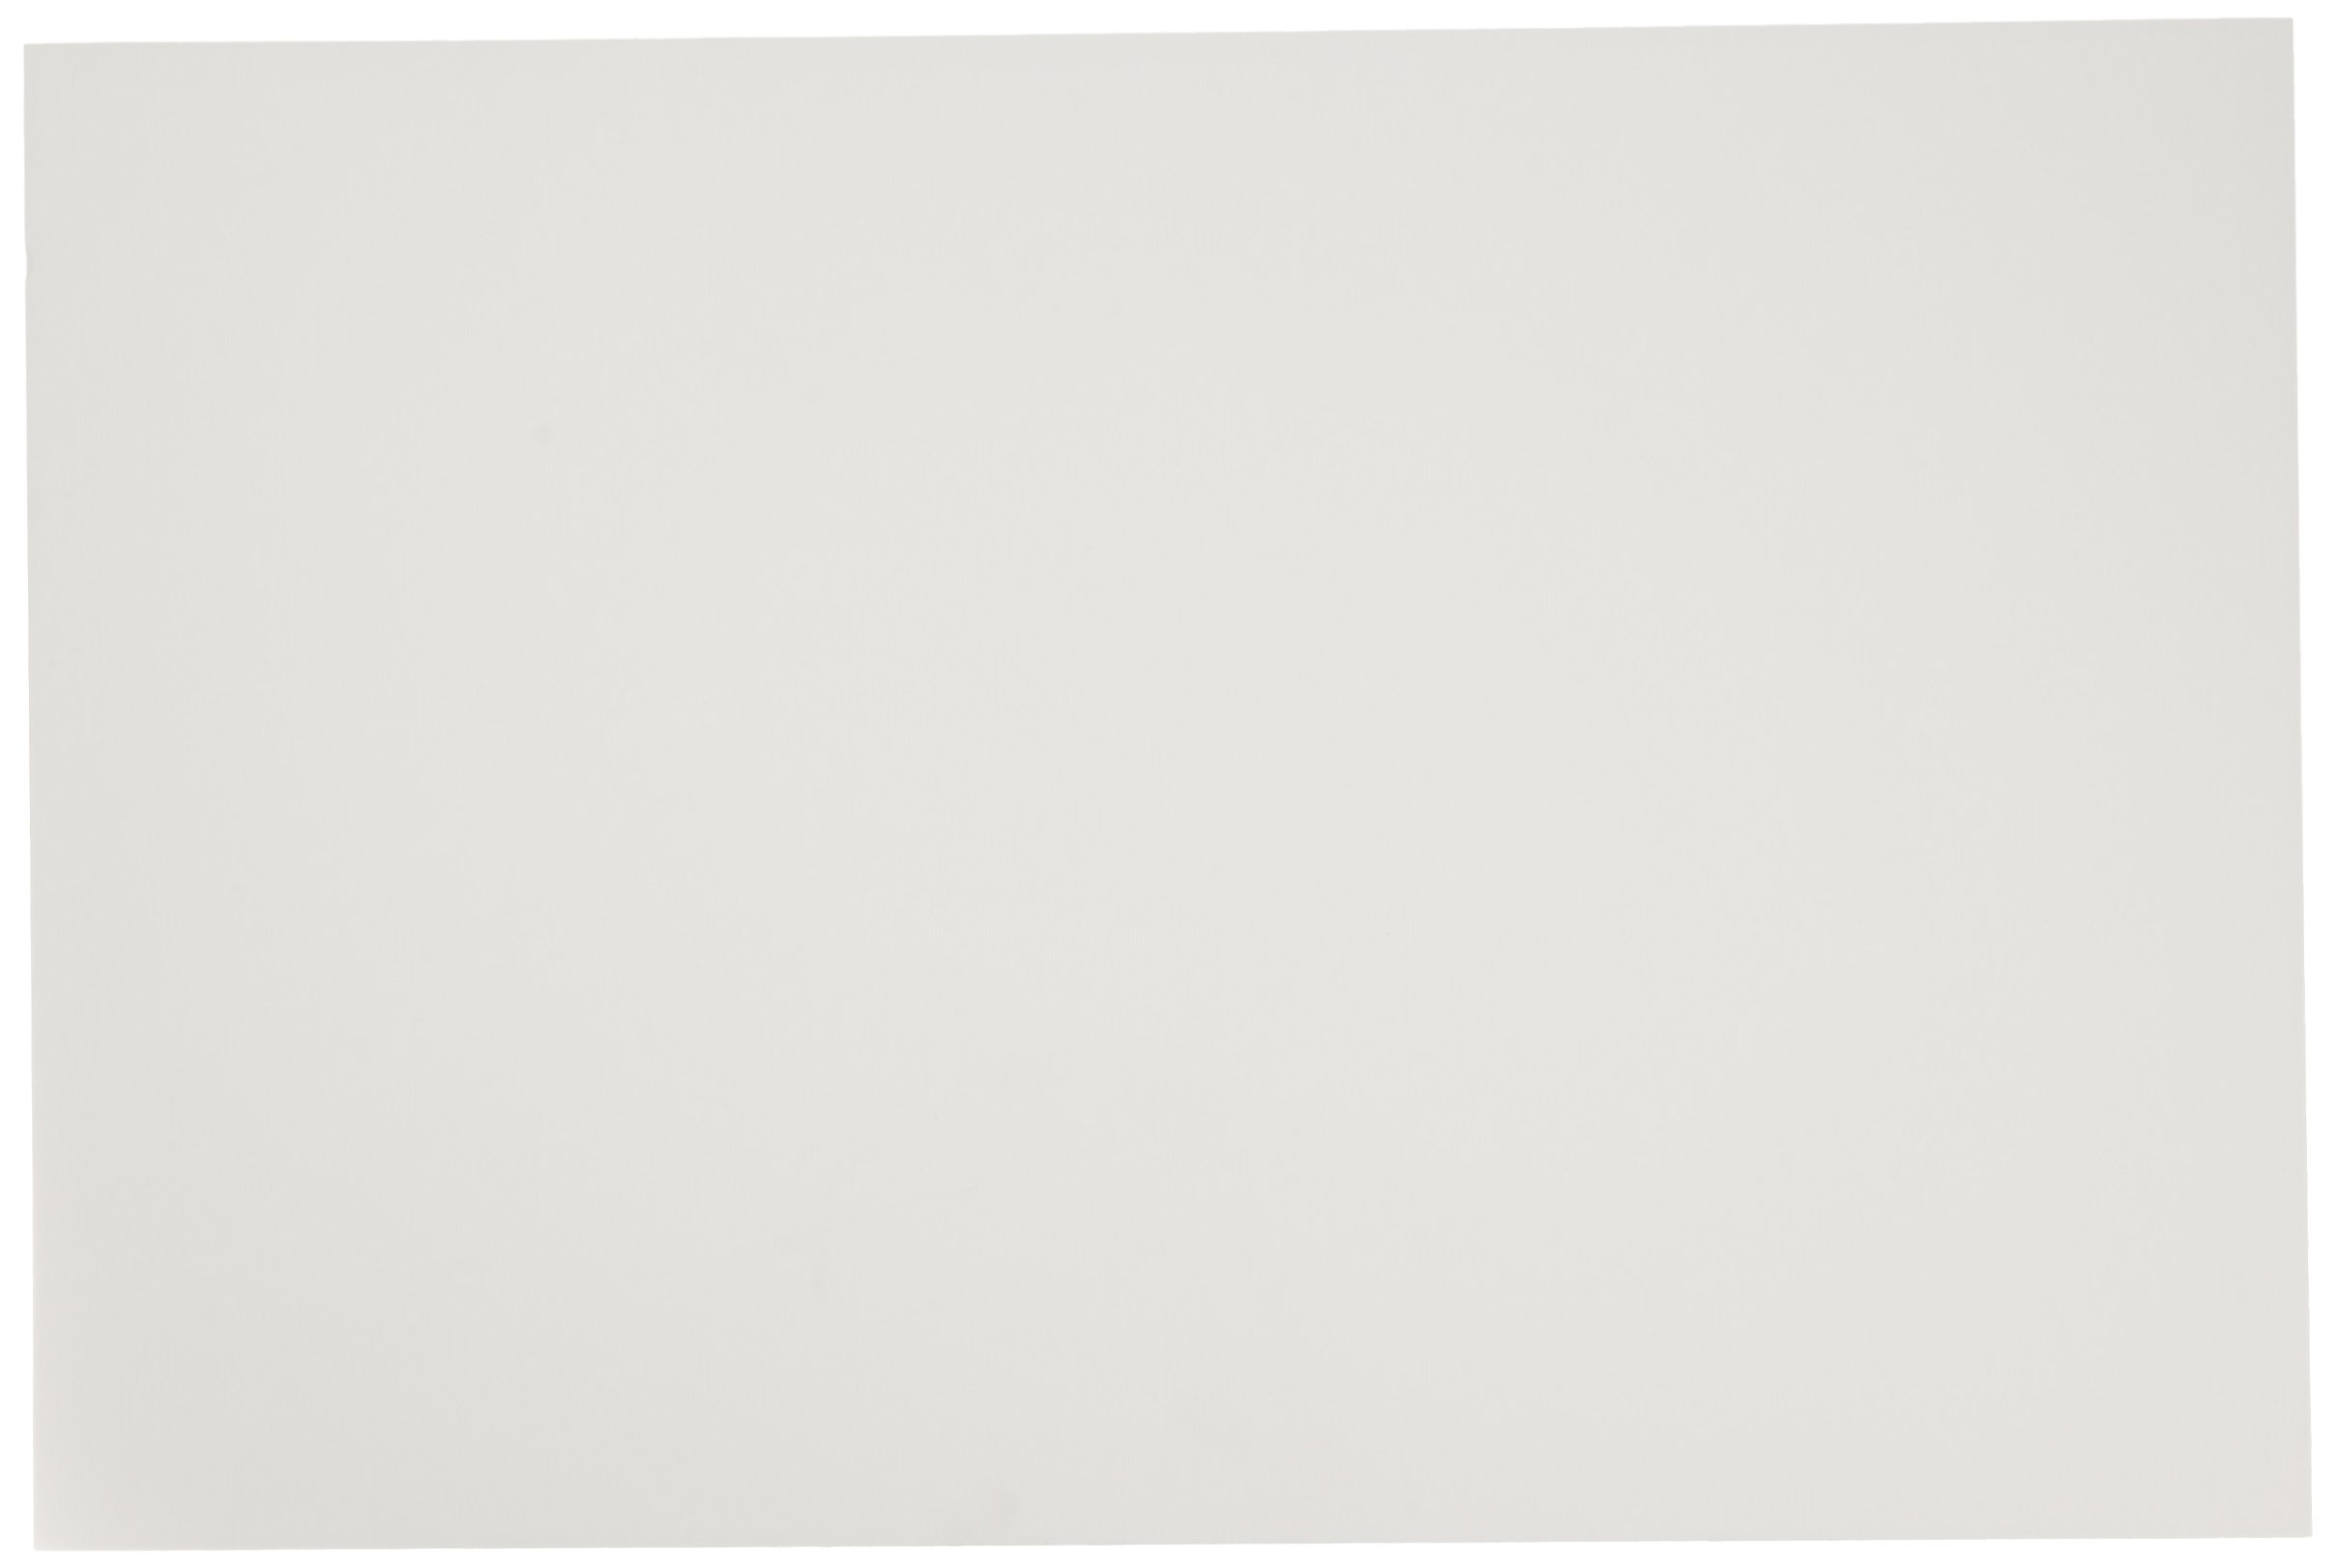 Crescent 99 Illustration Board 14 ply - 20 x 30 inches - Pack of 10 - White - 405105 by Crescent